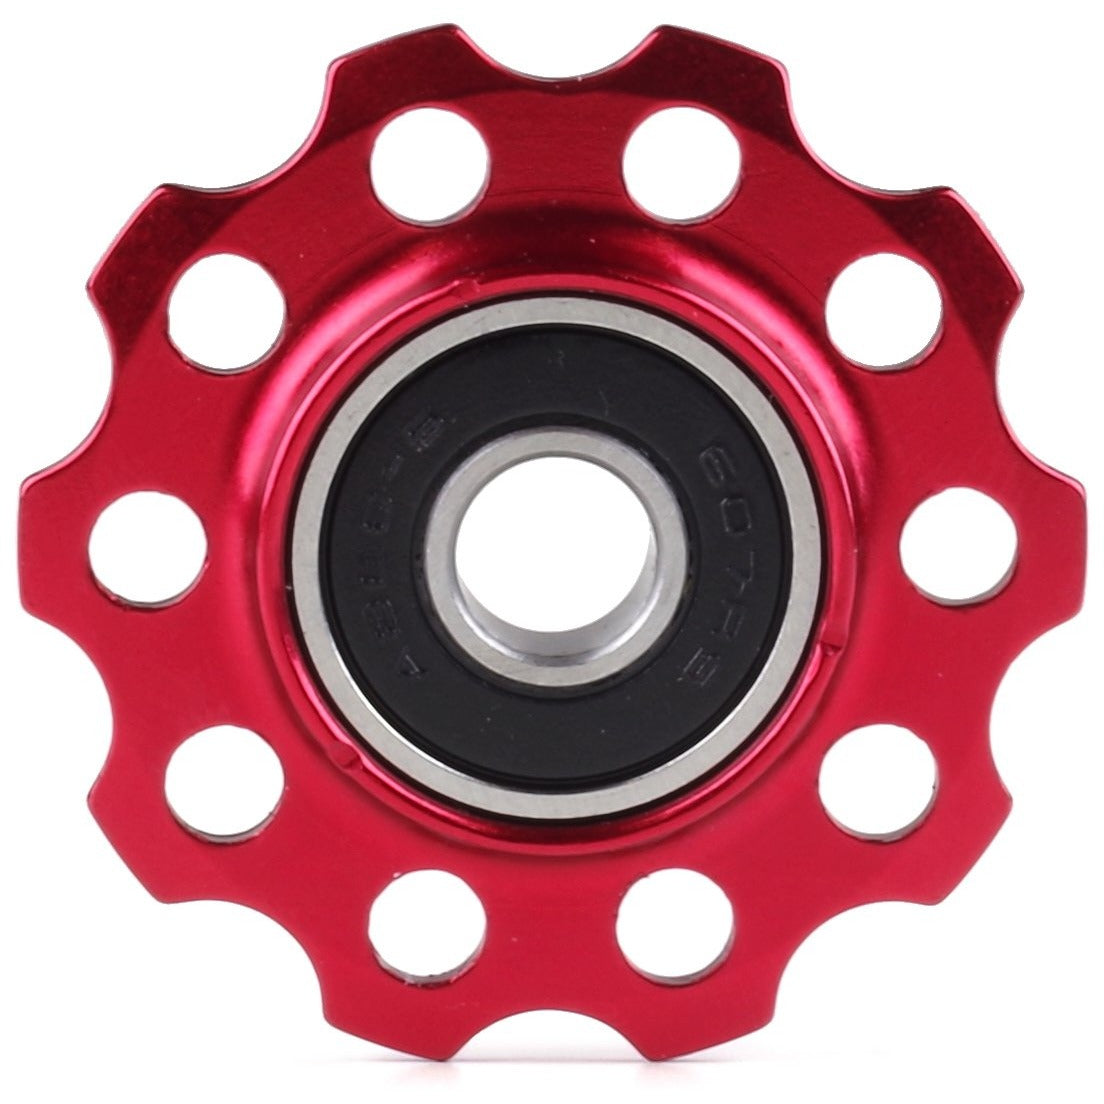 Grand Cru Sealed Bearing Jockey Wheels, 10 tooth